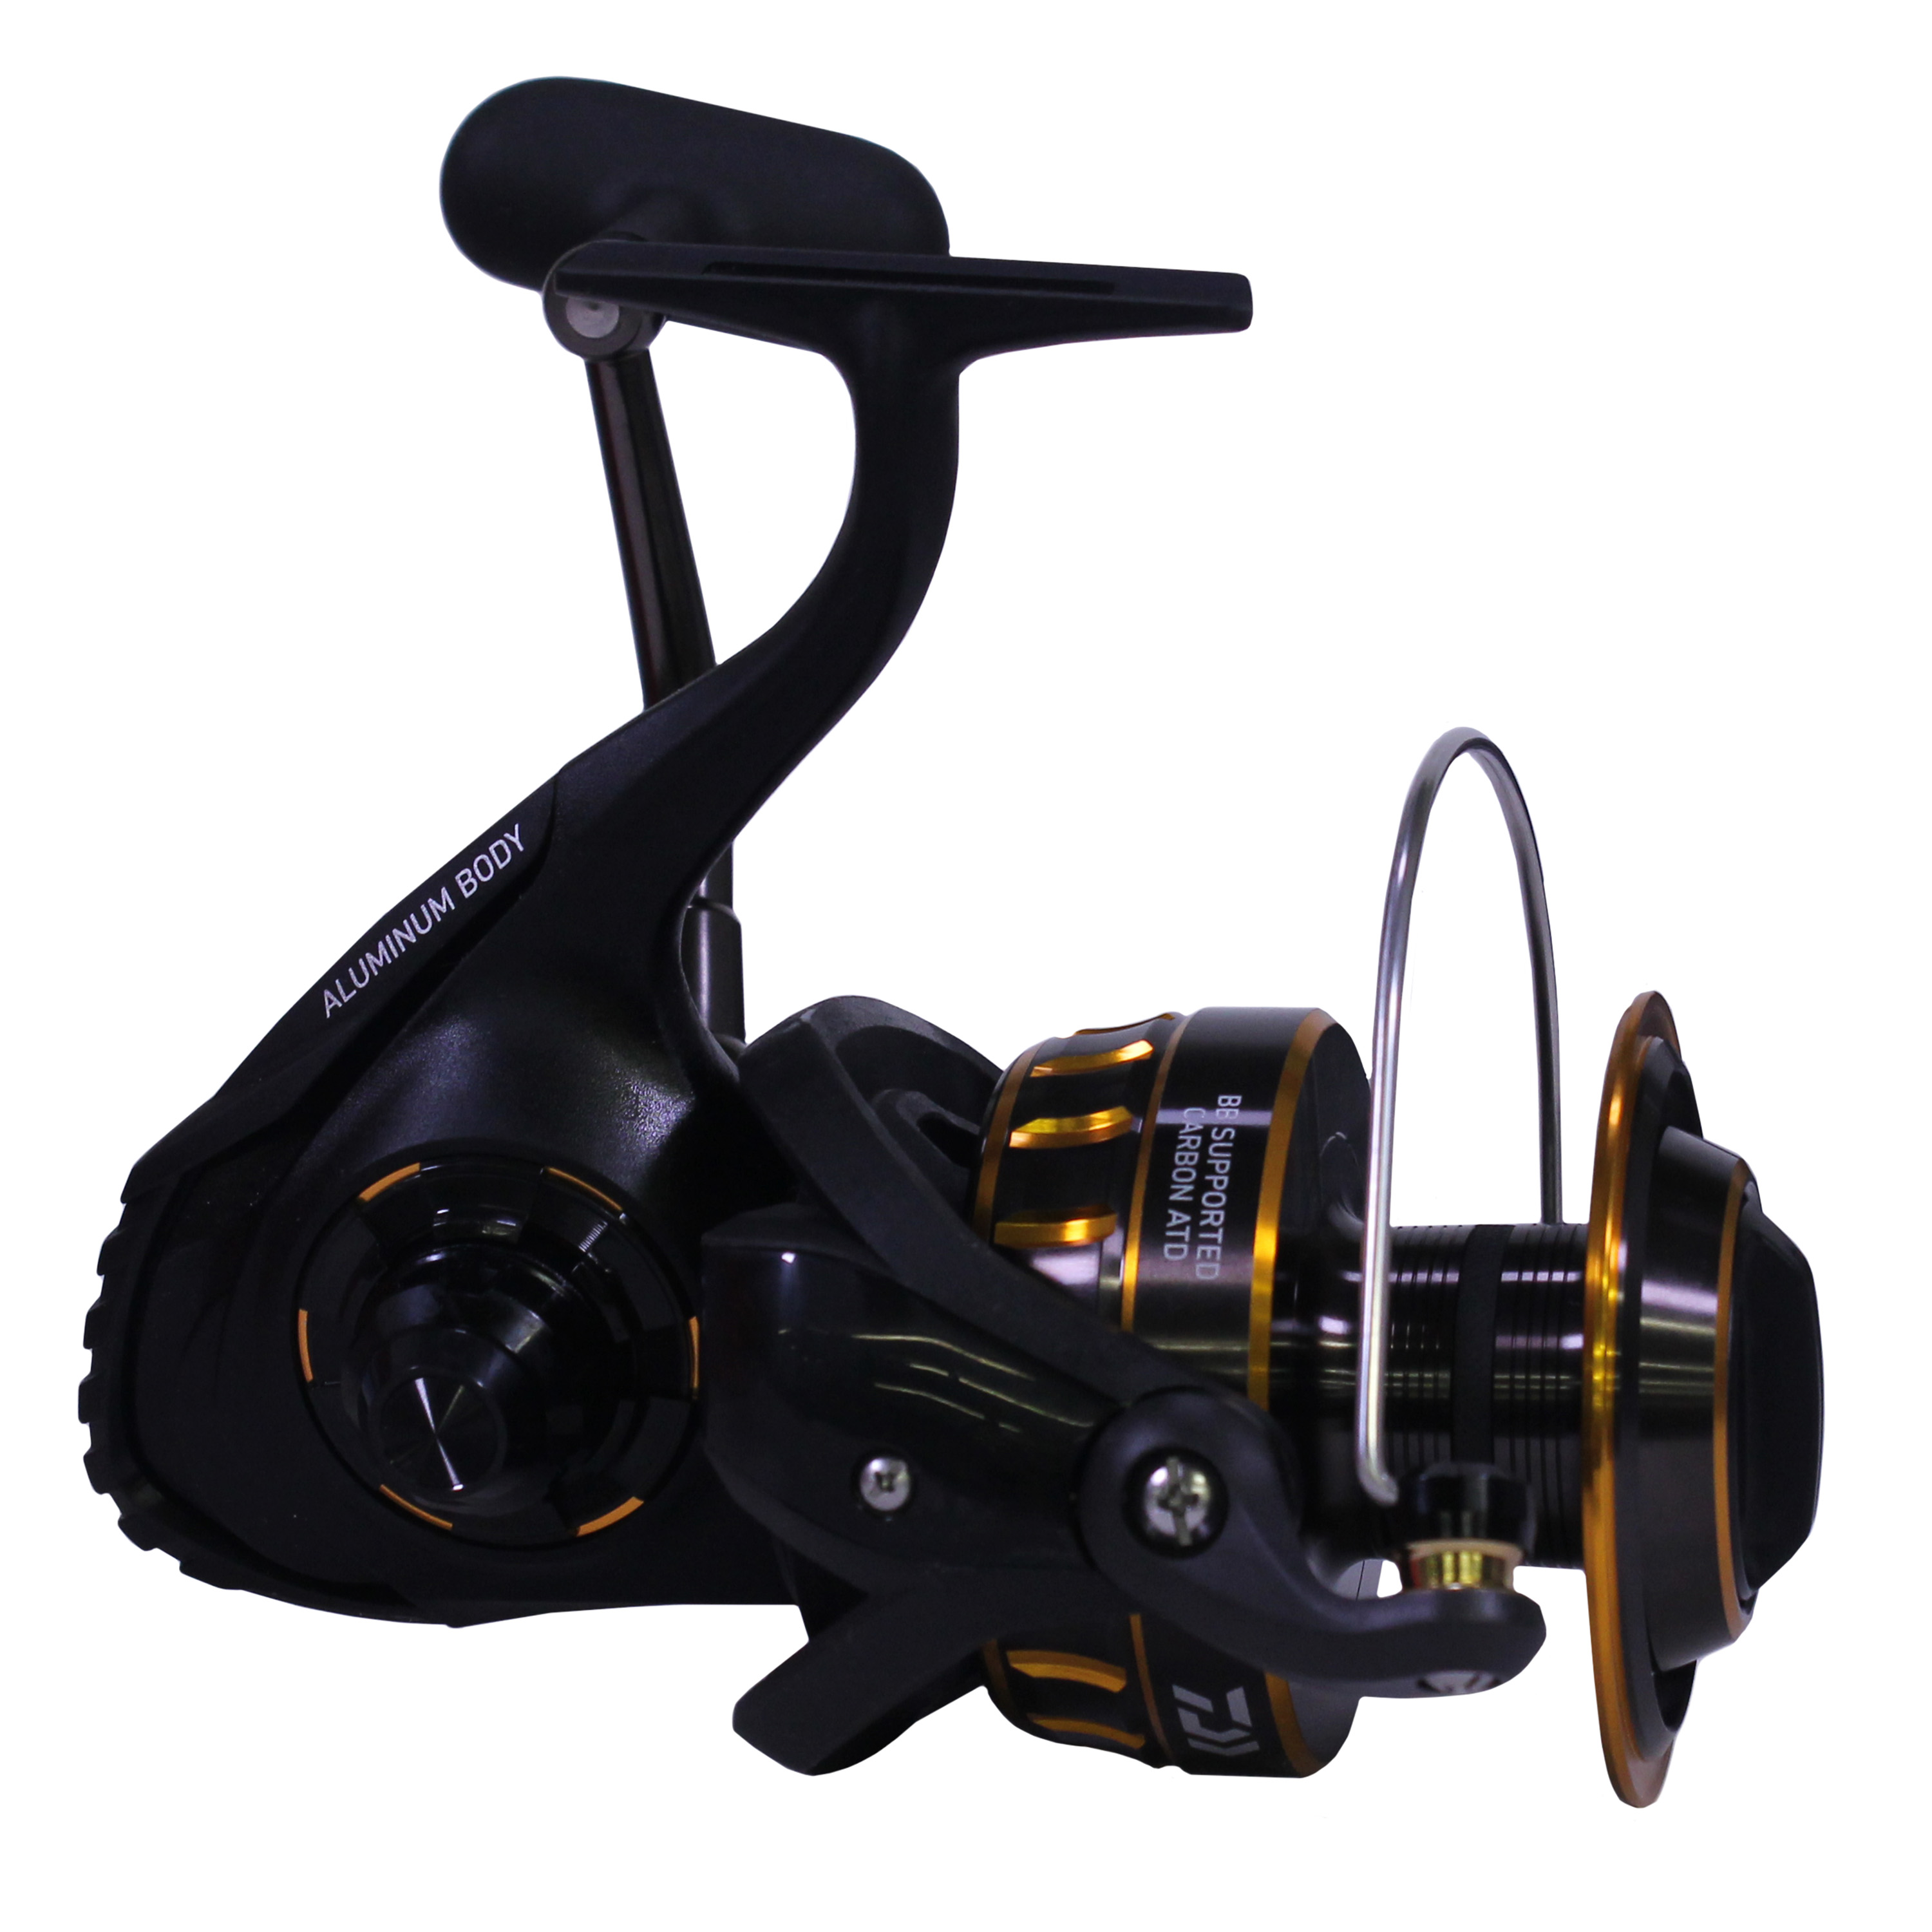 "Daiwa BG Saltwater Spinning Reel 8000, 5.3:1 Gear Ratio, 6+1 Bearings, 53.30"" Retrieve Rate, 33 lb Max Drag"